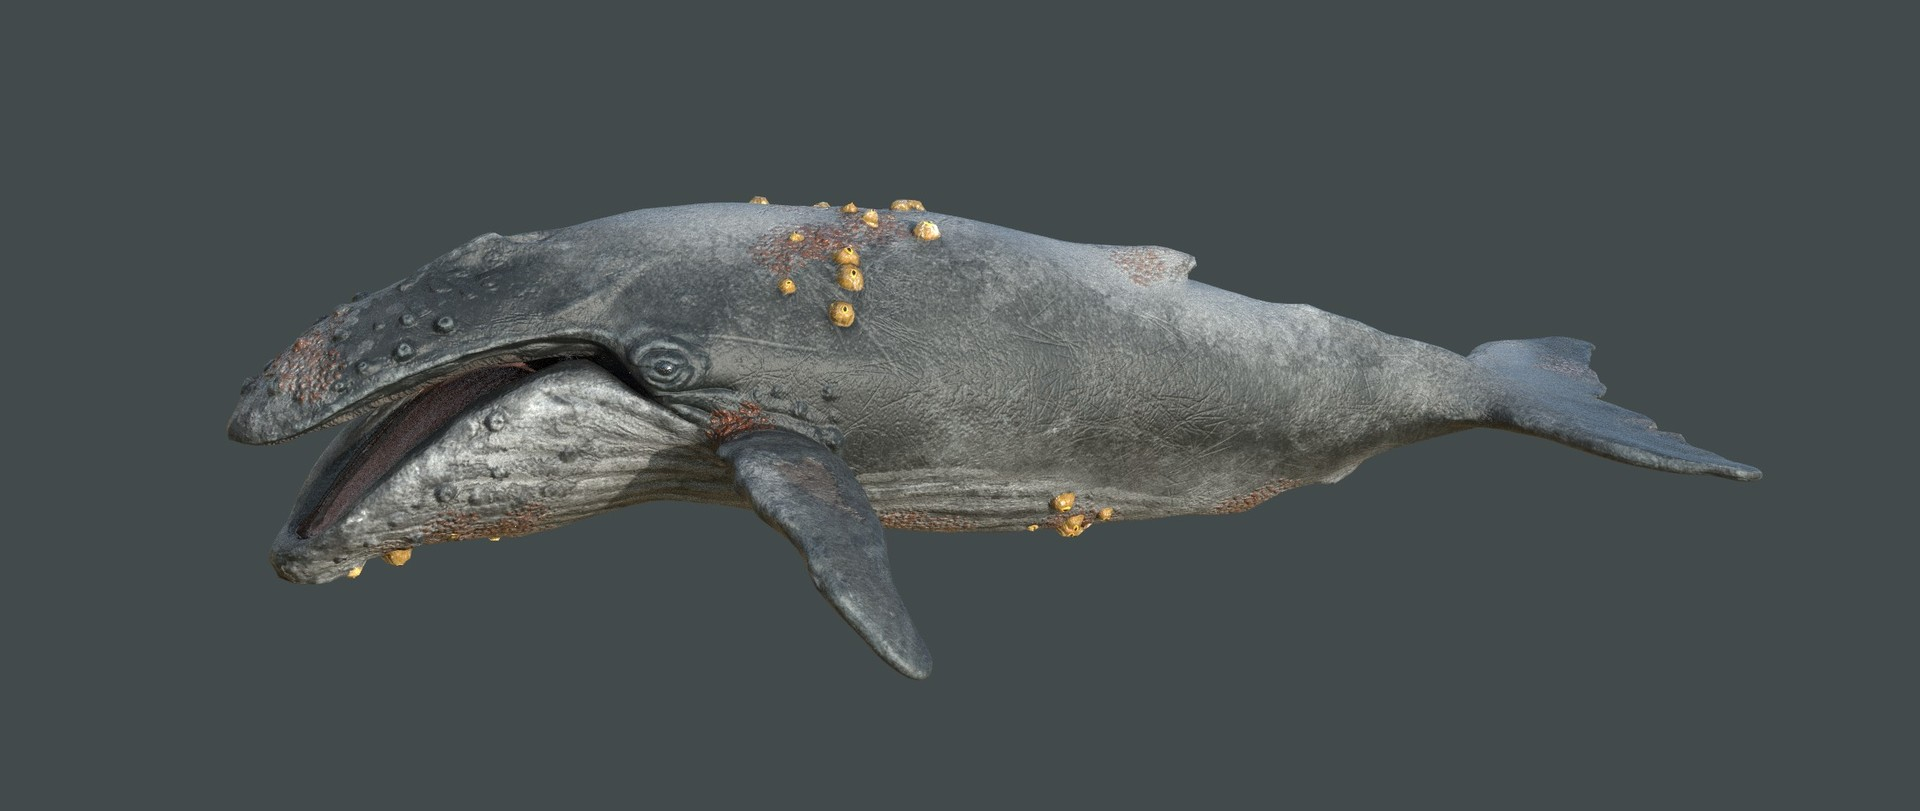 Laurie annis humpbackwhale haunting render24